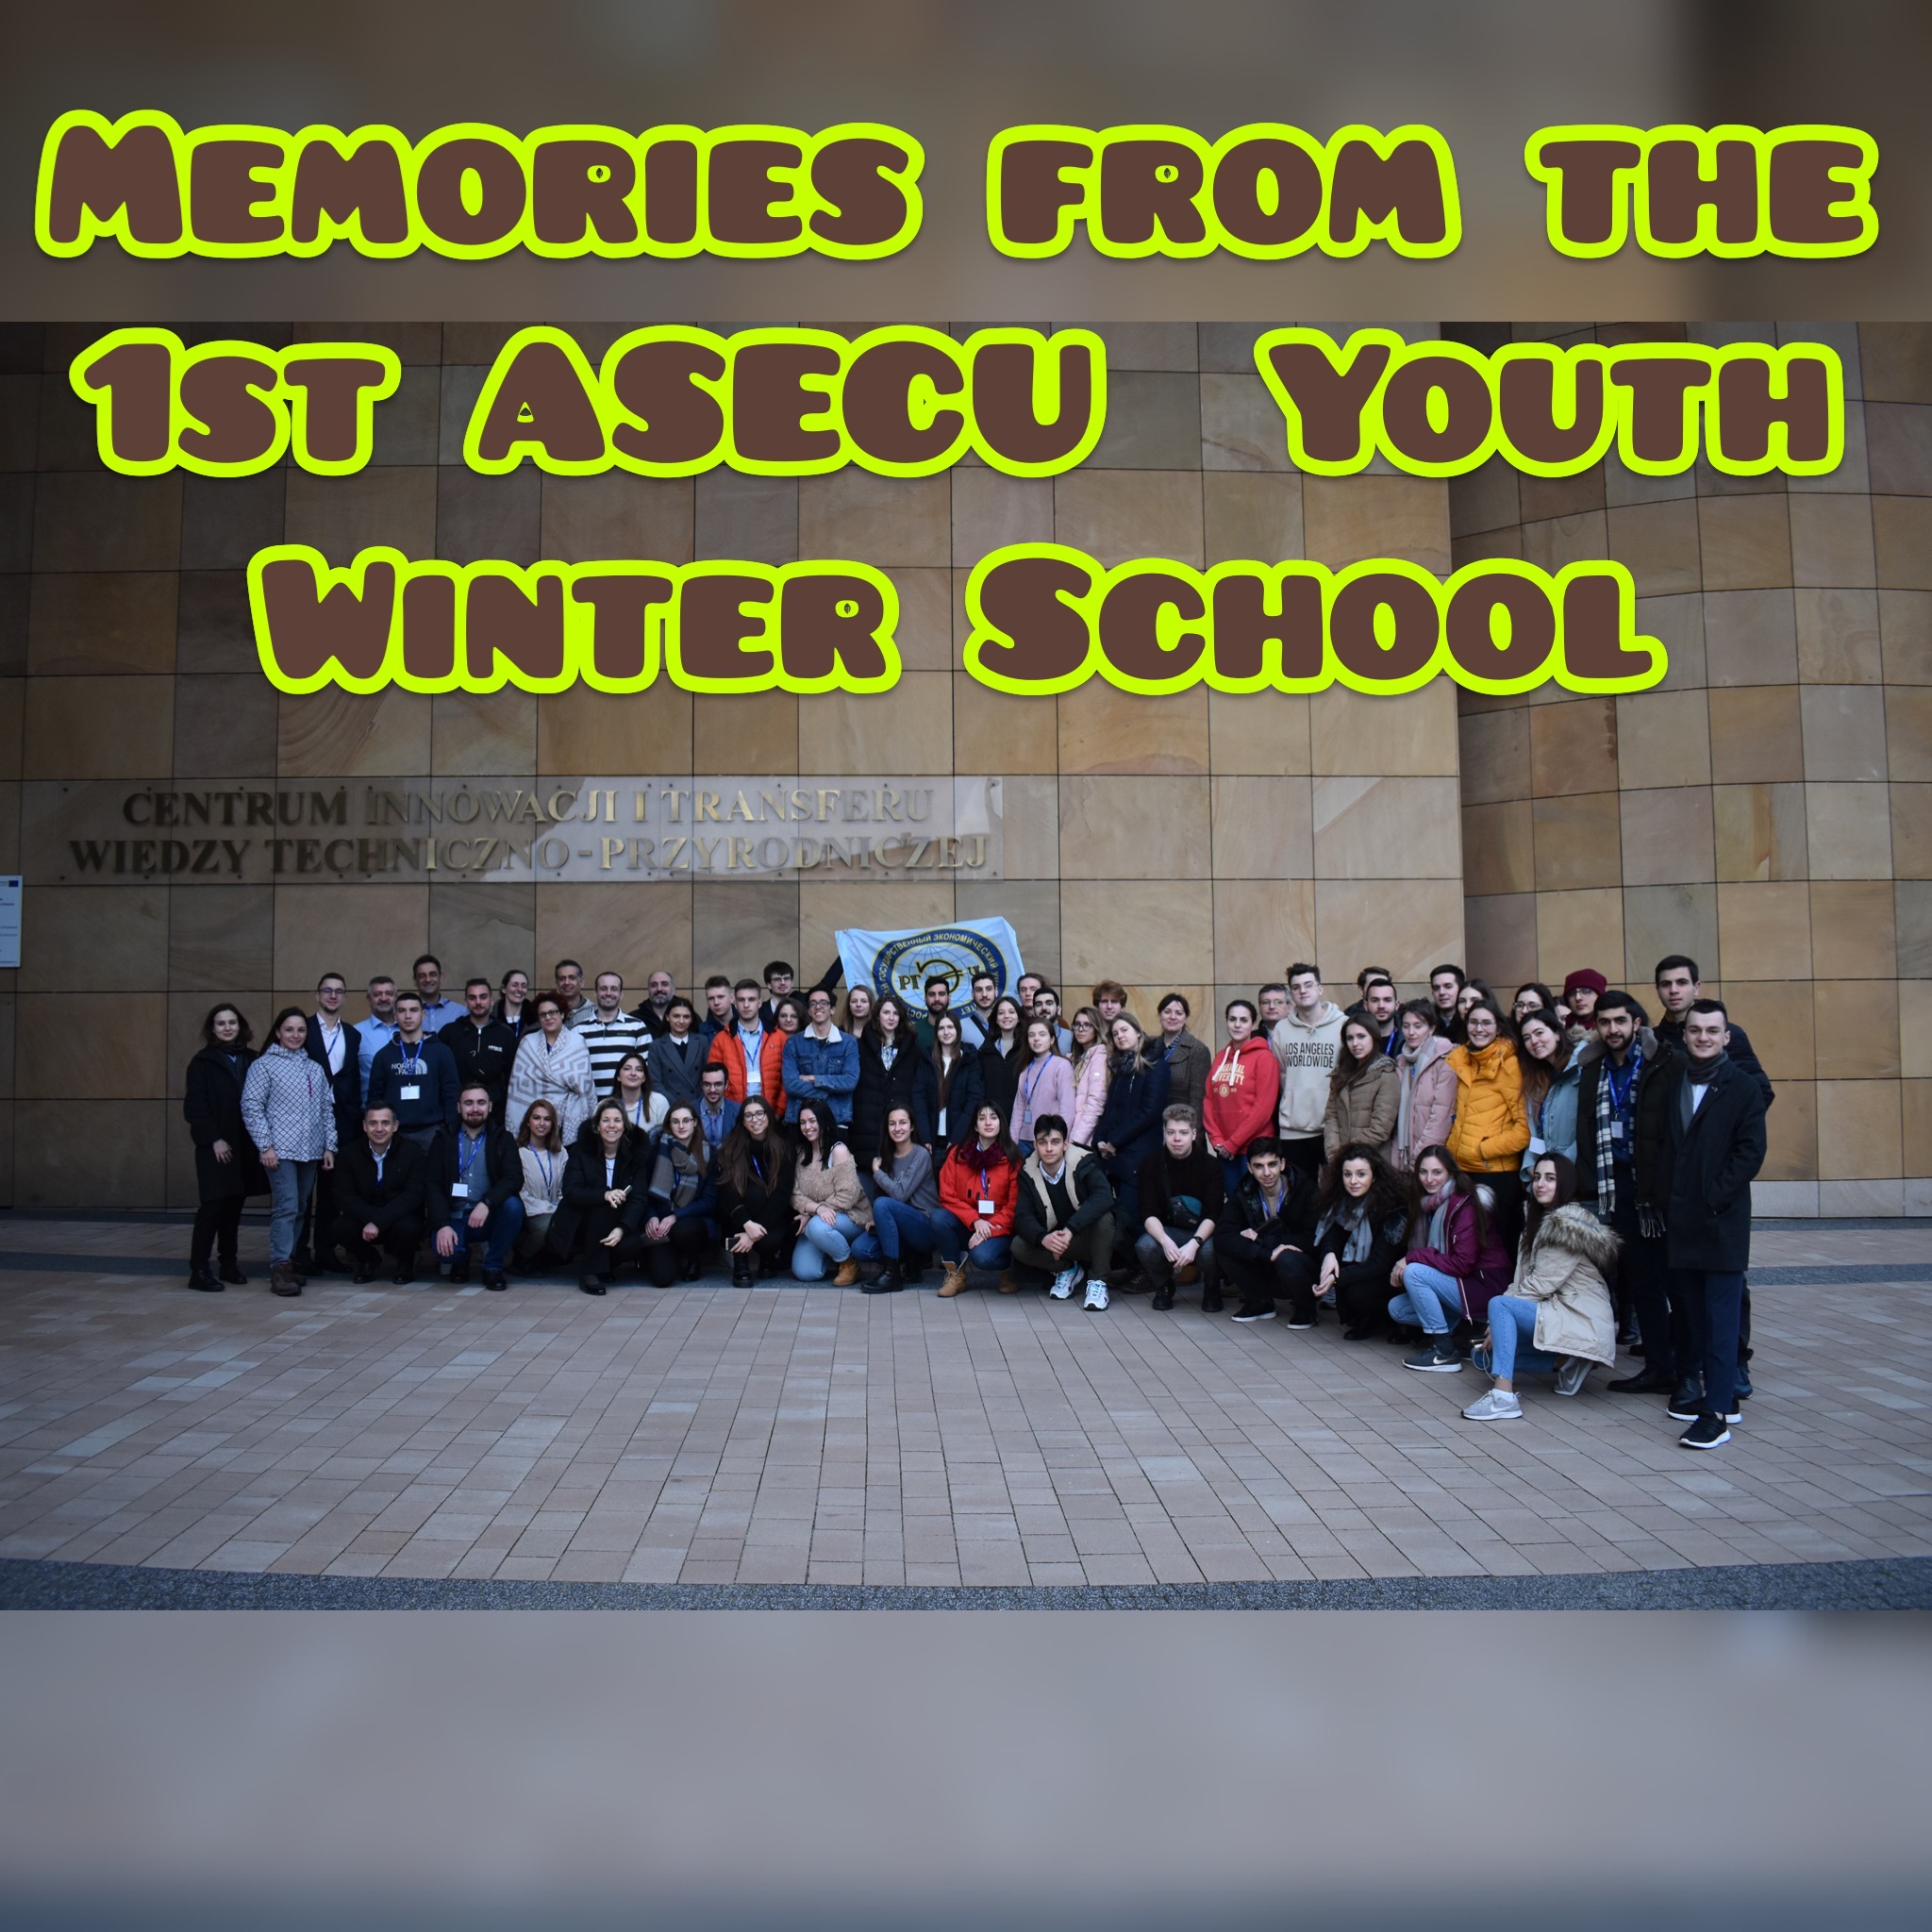 The 1st ASECU Youth Winter School took place in Polanczyk, POLAND